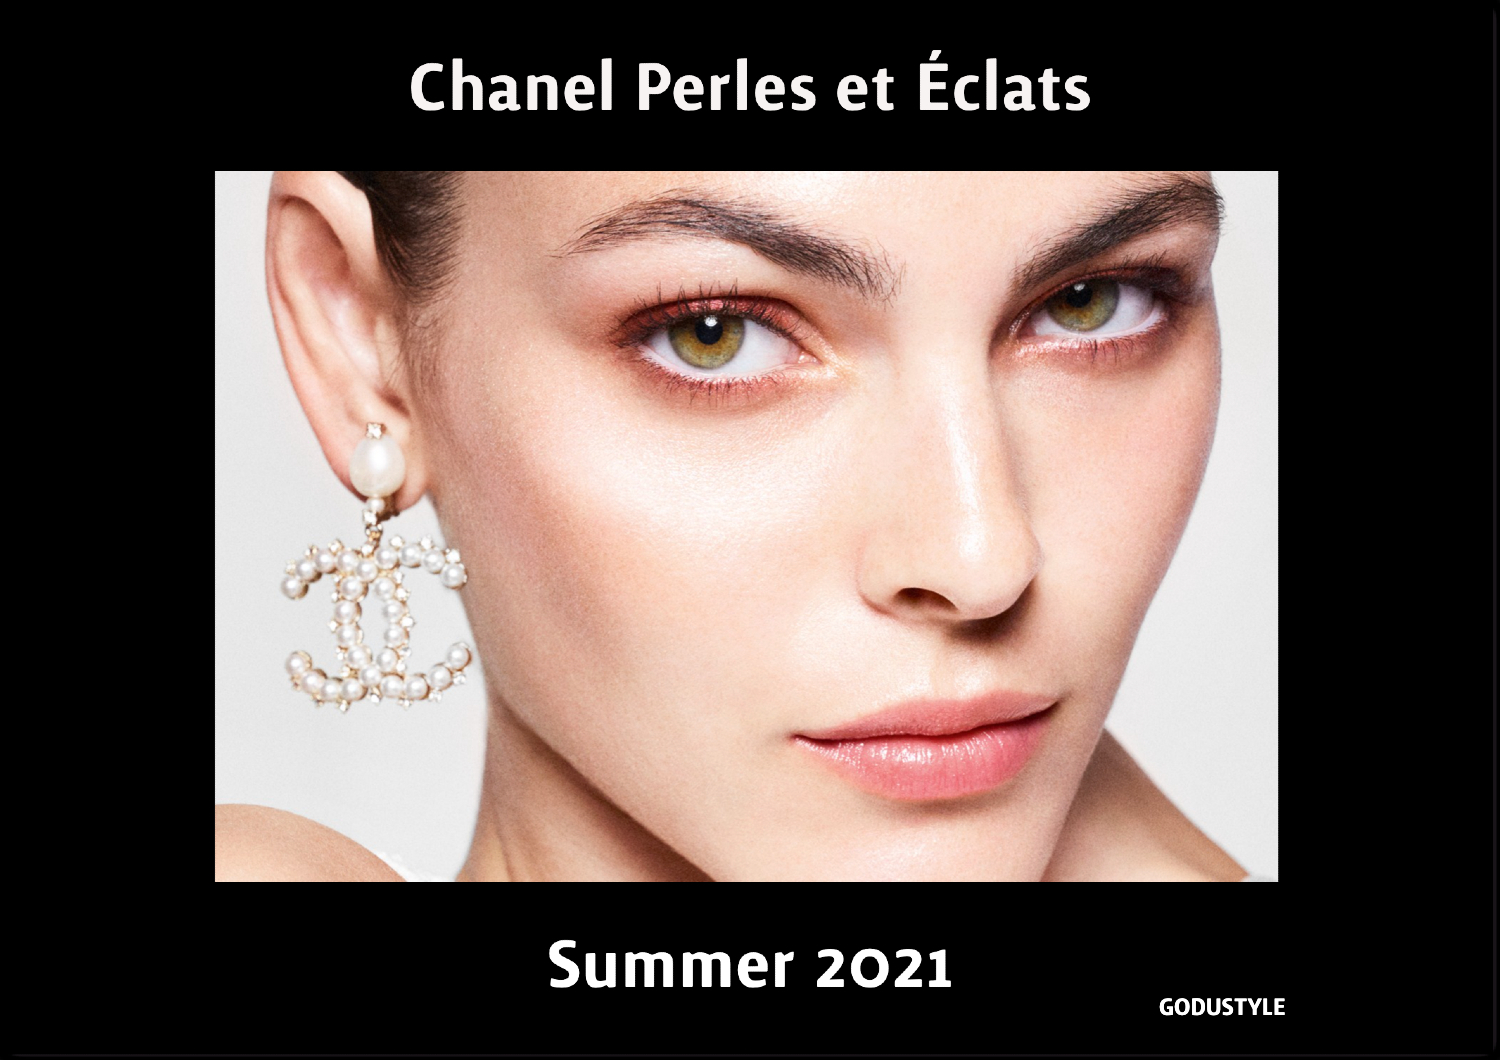 chanel-perles-et-eclats-summer-2021-le-blanc-makeup-look-style3-details-shopping-maquillaje-verano-godustyle